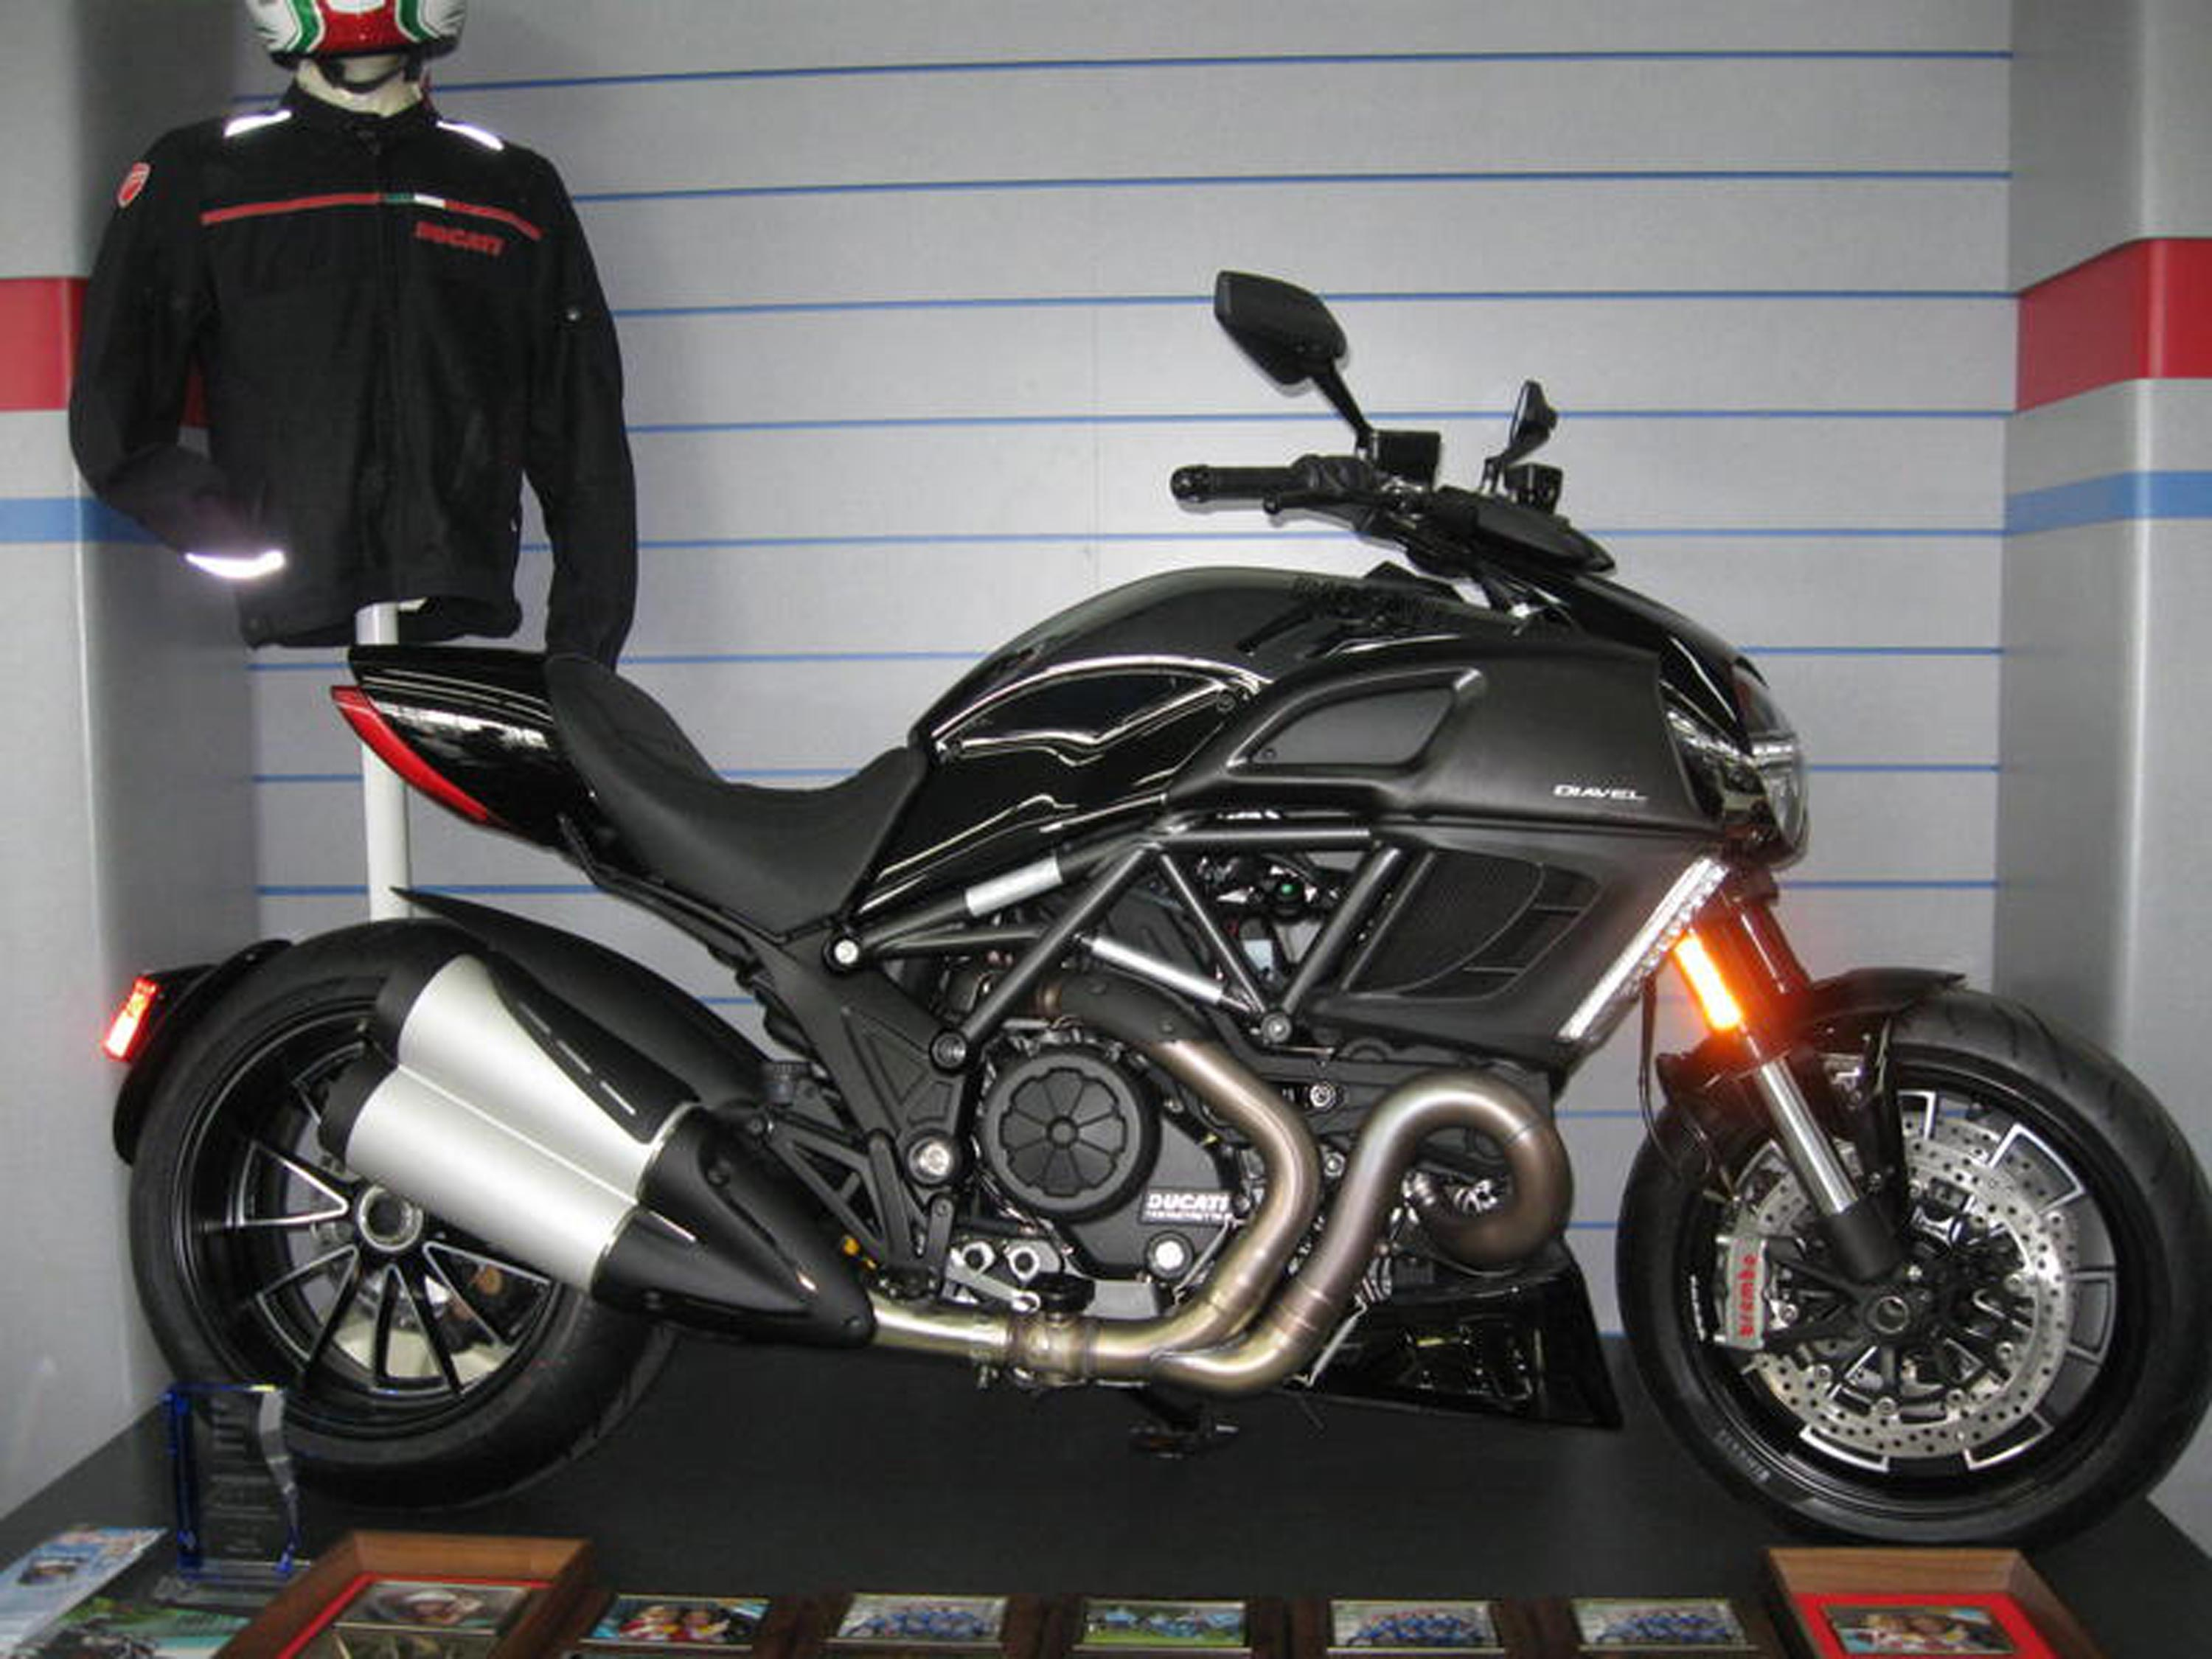 2013 Ducati Diavel Dark #11